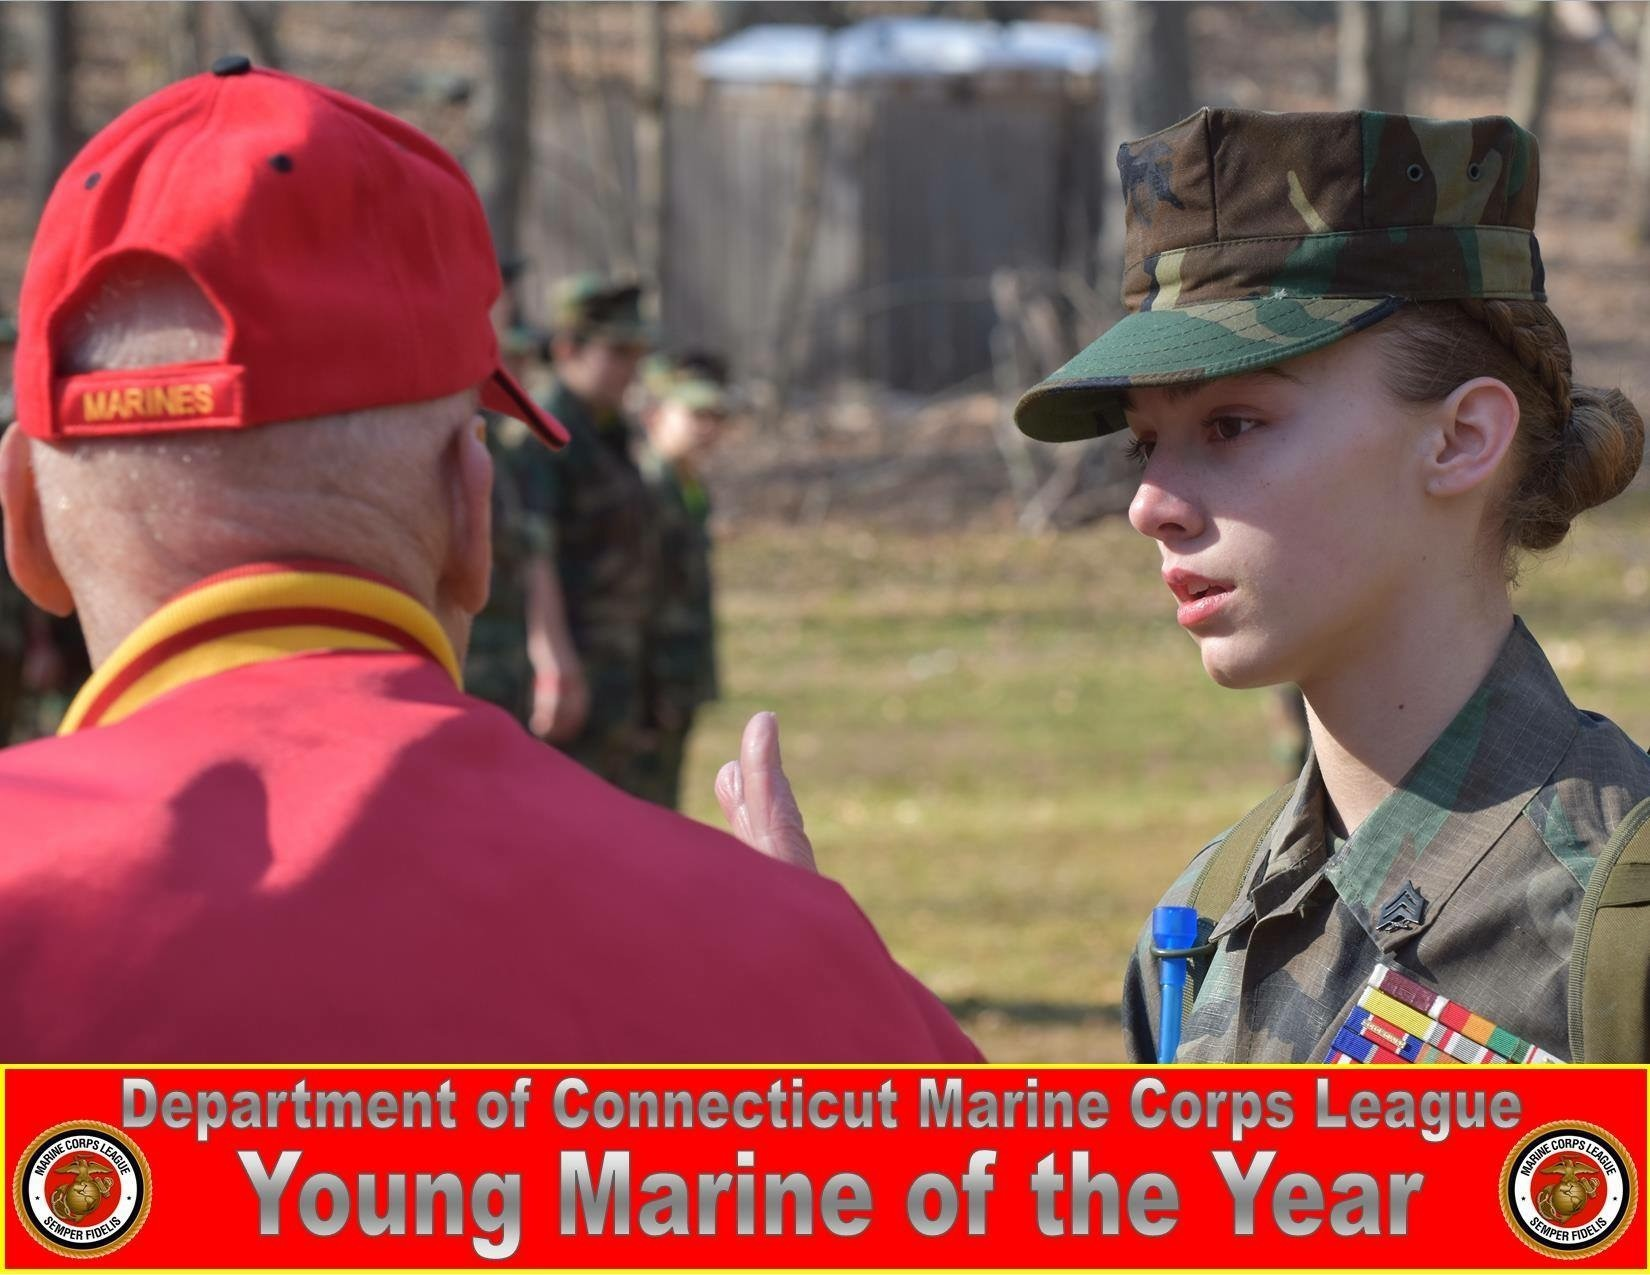 Brass City Young Marine named Marine Corps League Young